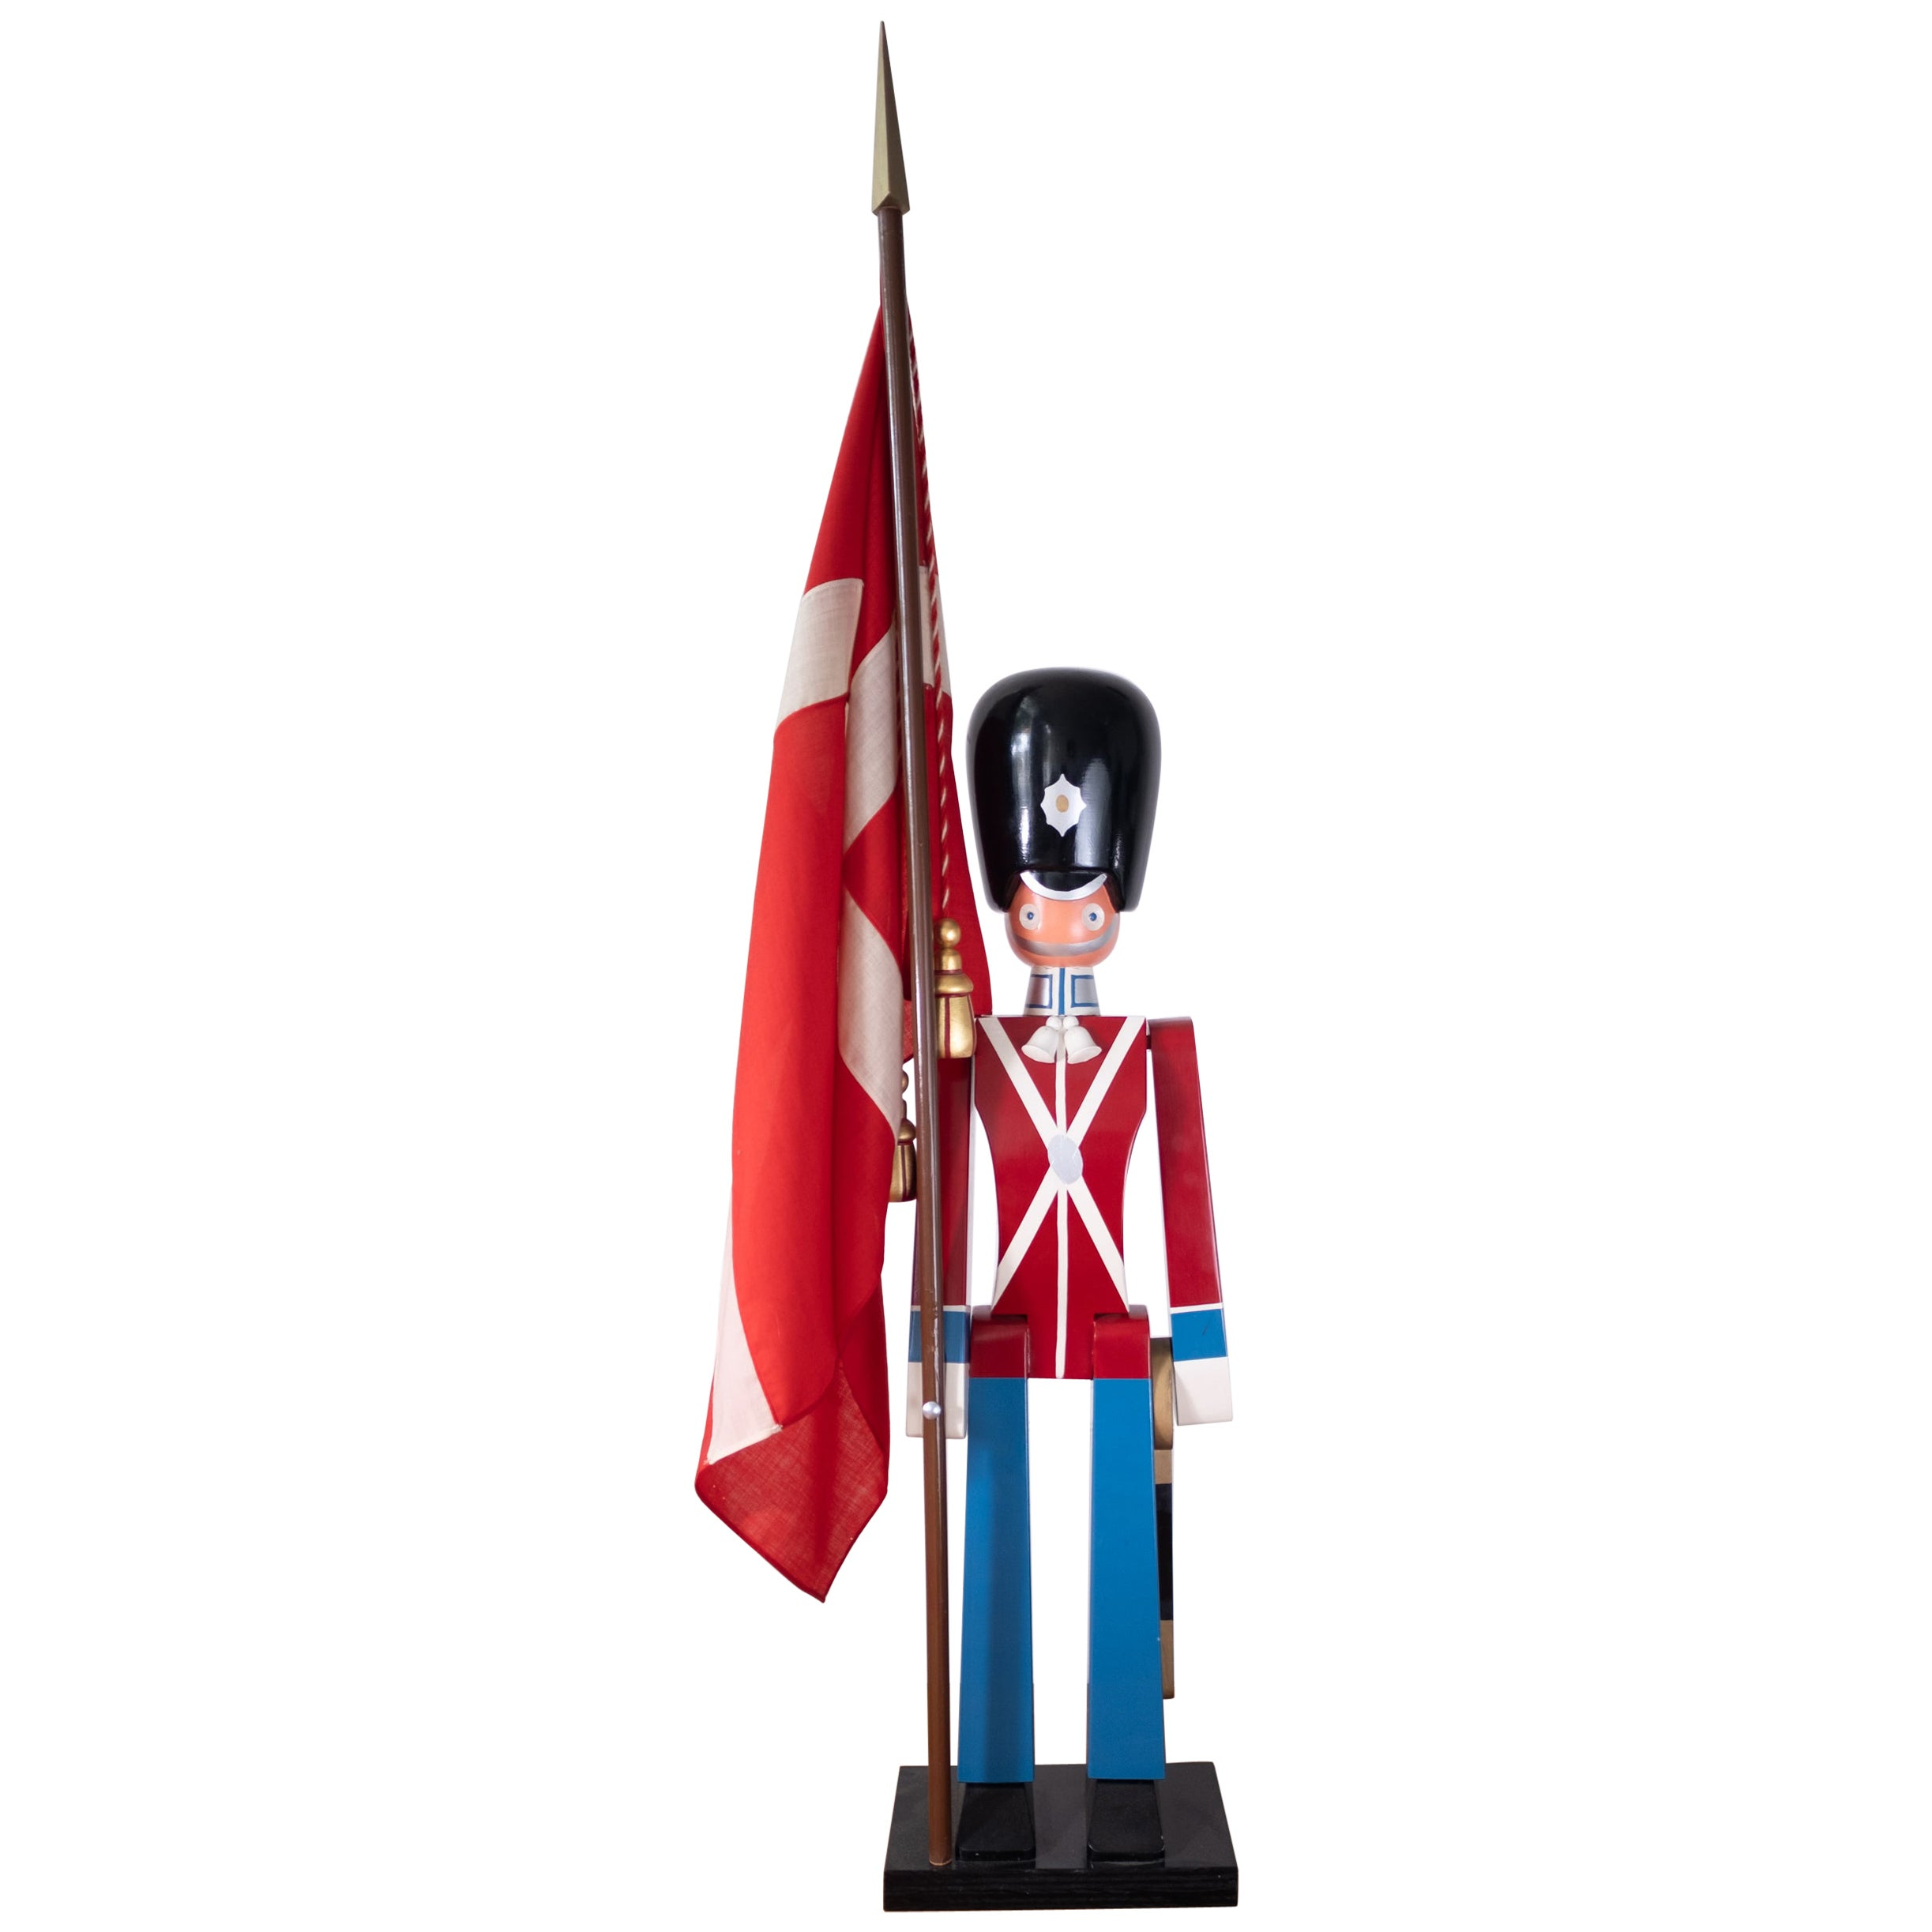 Huge Wooden Toy Soldier by Kay Bojesen